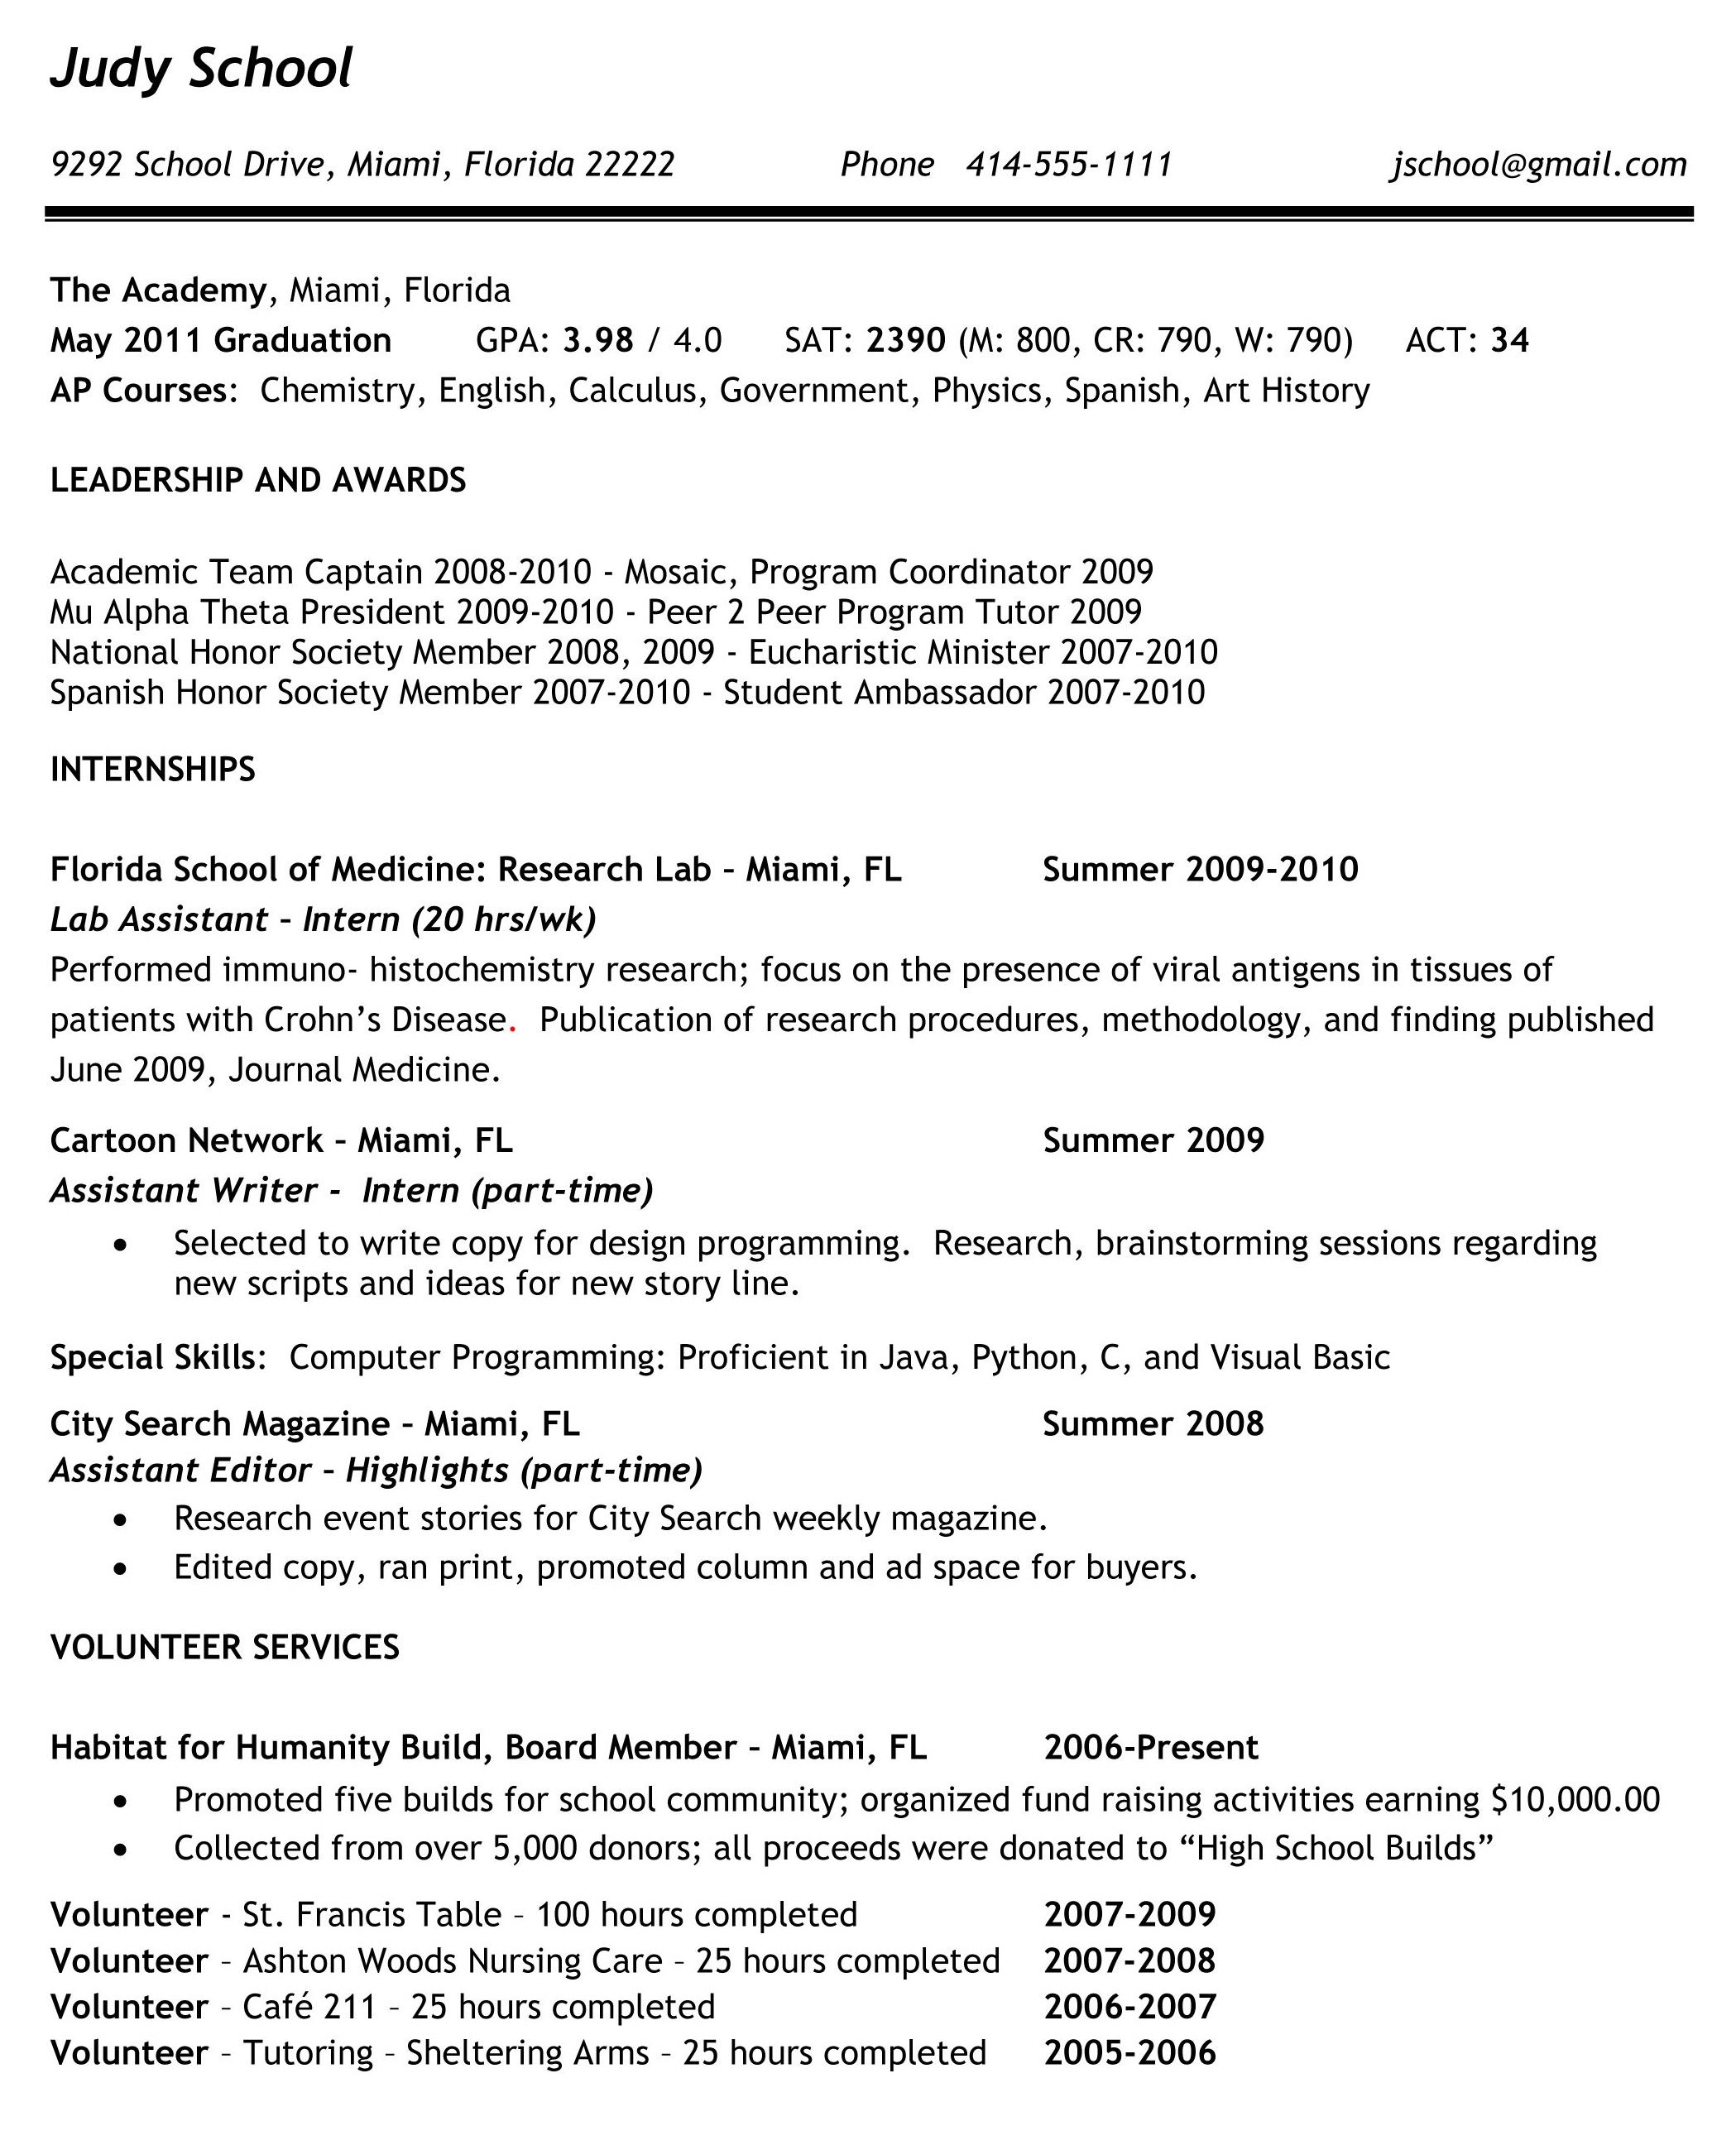 College Resume Examples Classy High School Resume Examples For College Admission Sample Resumes Design Decoration